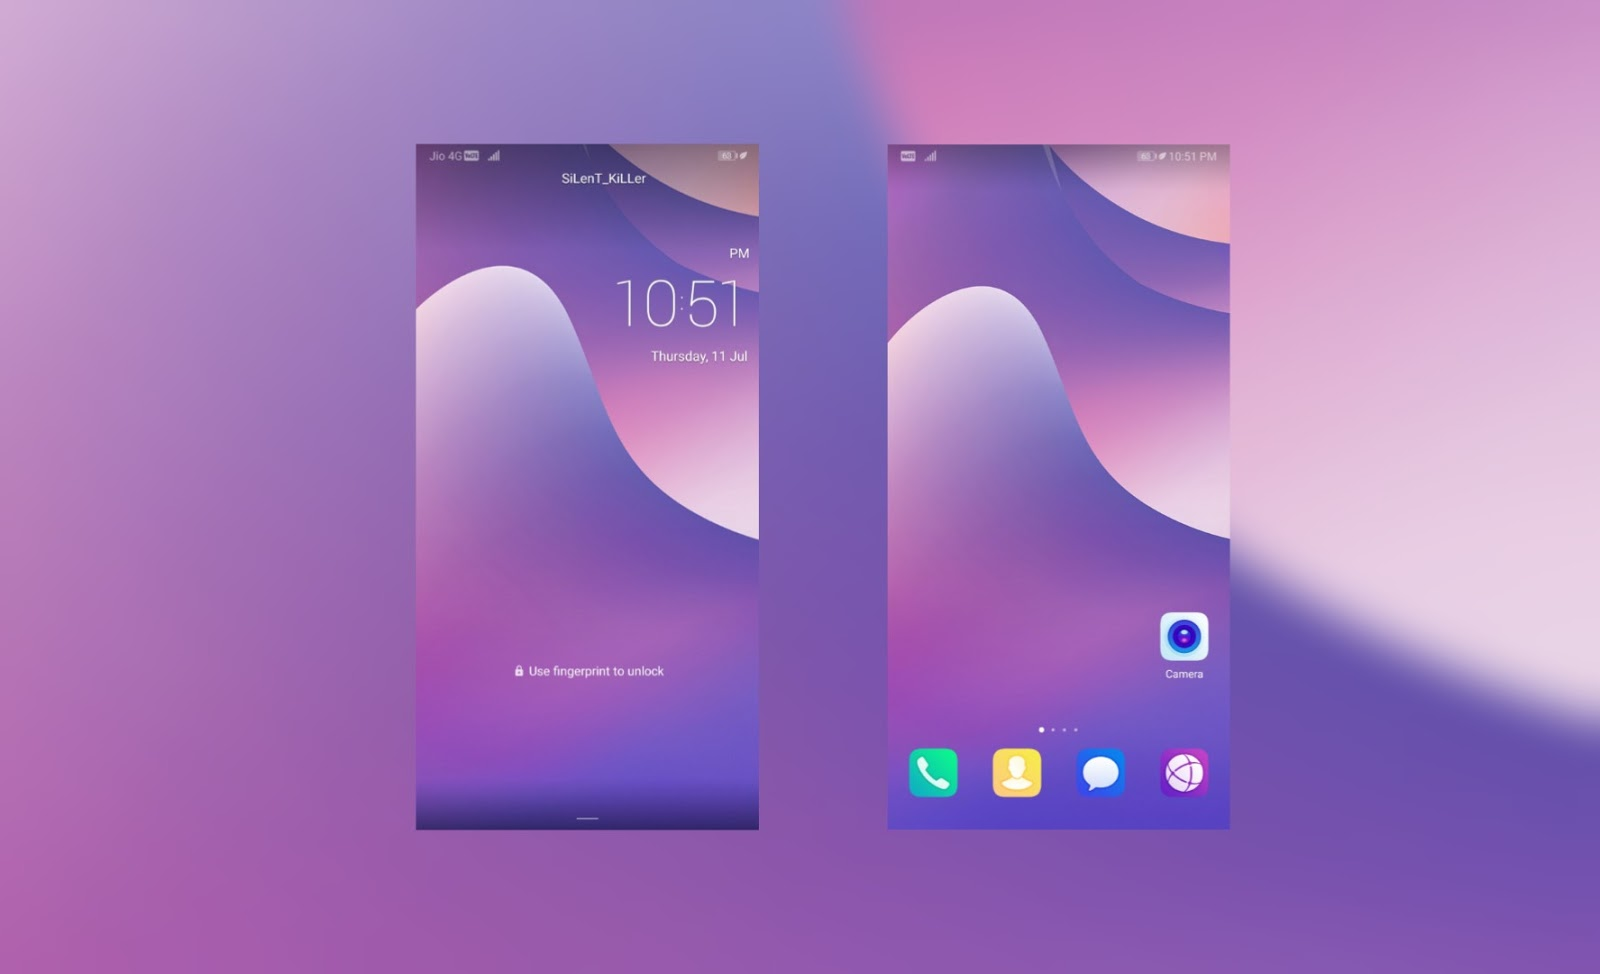 Huawei Y9 Prime] Download Latest Huawei Y9 Prime Stock